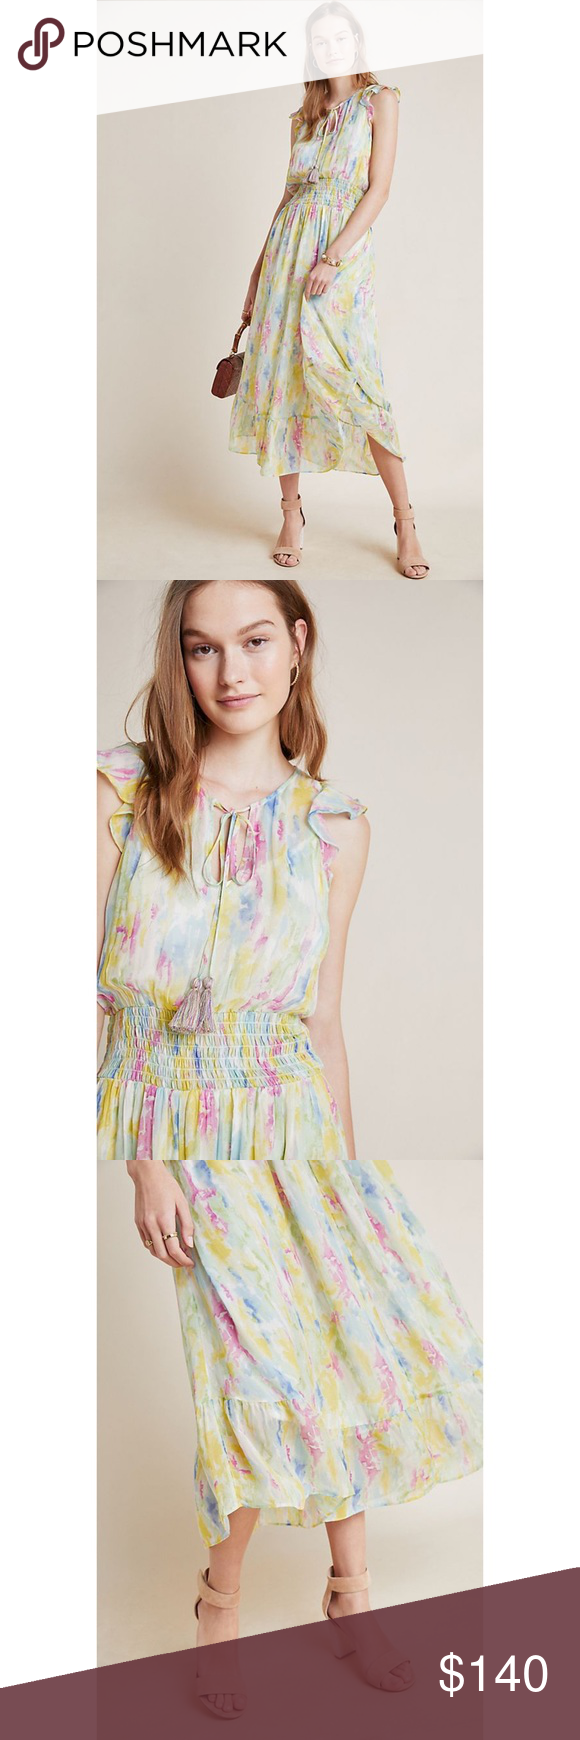 Anthropologie Watercolor Maxi Dress Size 2 Nwt Maxi Dress Dresses Pullover Styling [ 1740 x 580 Pixel ]